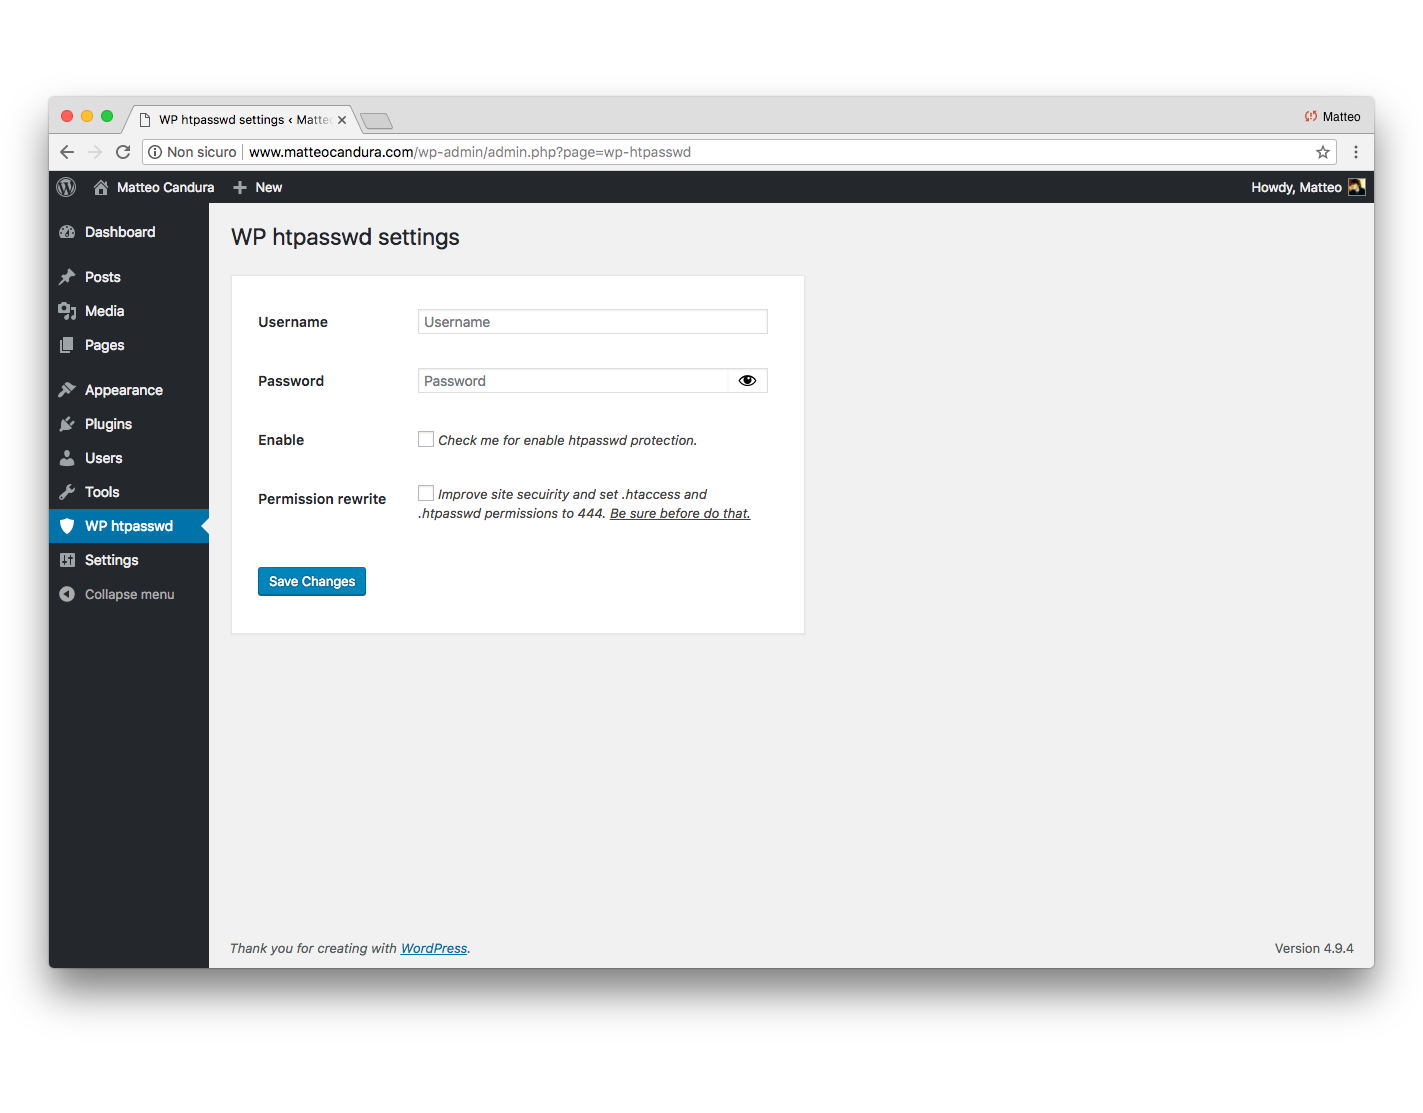 Sample view of the plugin page.